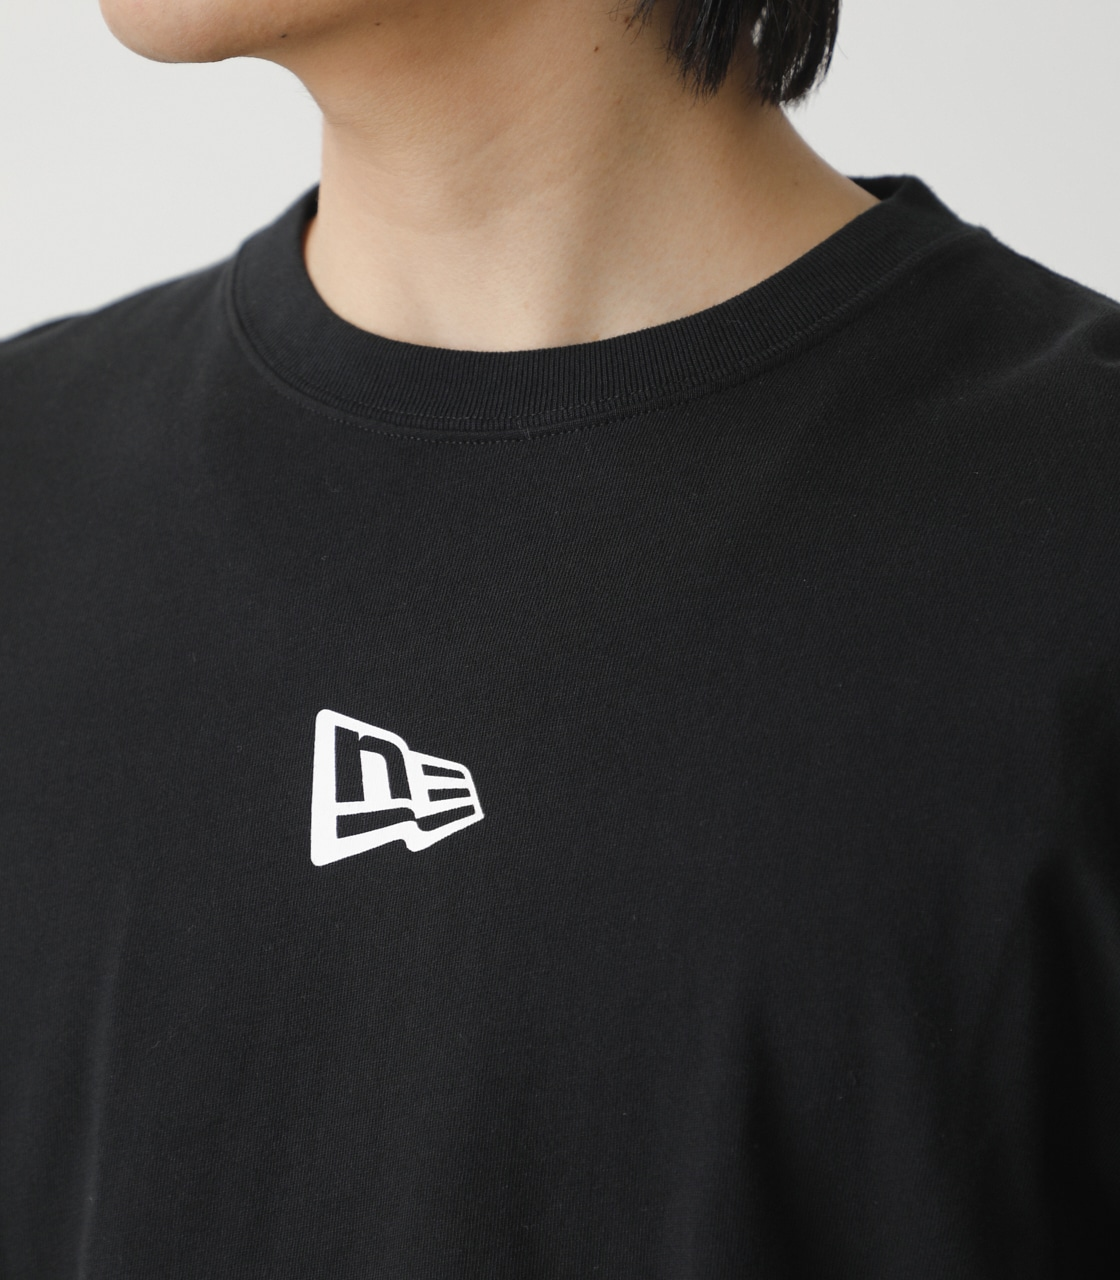 NEW ERA×AZUL LONG T-SHIRTS/NEW ERA×AZULロングTシャツ 詳細画像 BLK 8